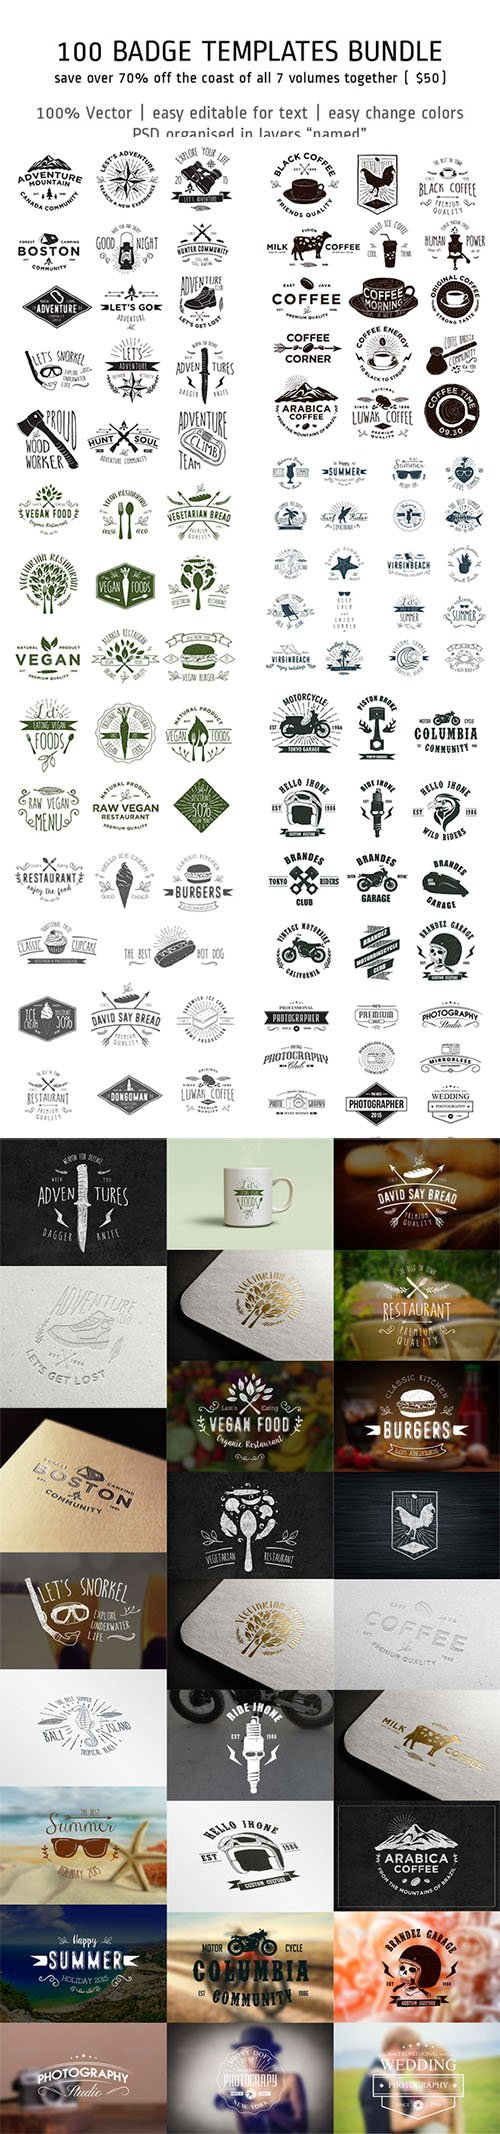 100 Badge Templates Bundle - Creativemarket 302552